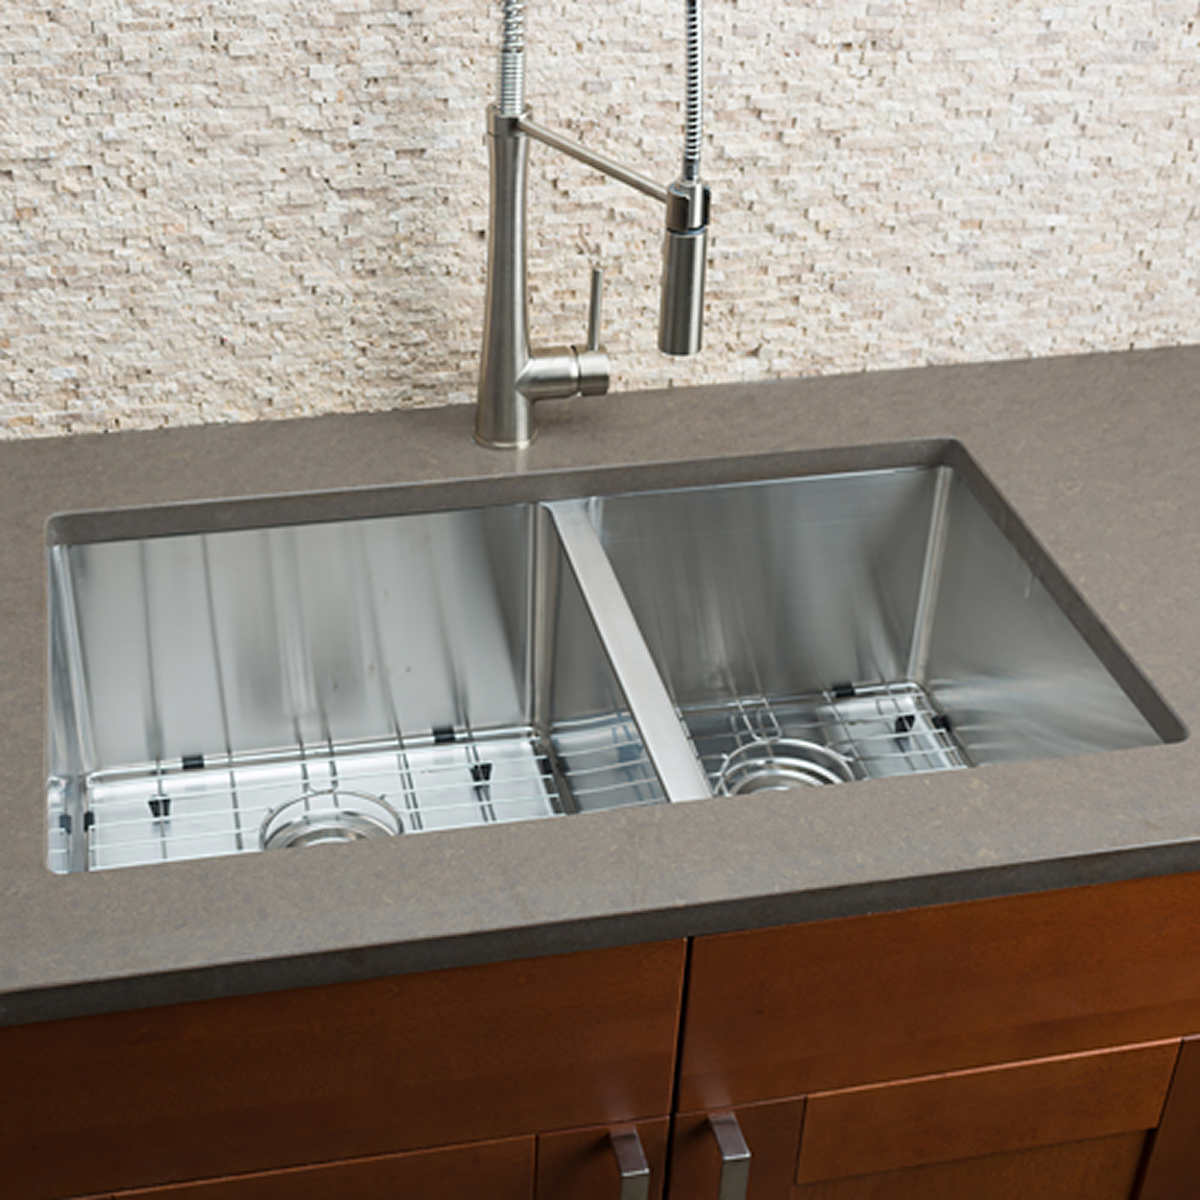 Hahn Chef Series Handmade 60/40 Double Bowl Sink  Kitchen Sink Faucet on copper bowl sink, hammered copper farmhouse sink, 24 bathroom vanity with sink, cast iron undermount double sink, 24 x 16 sink, 70 30 undermount stainless steel sink,